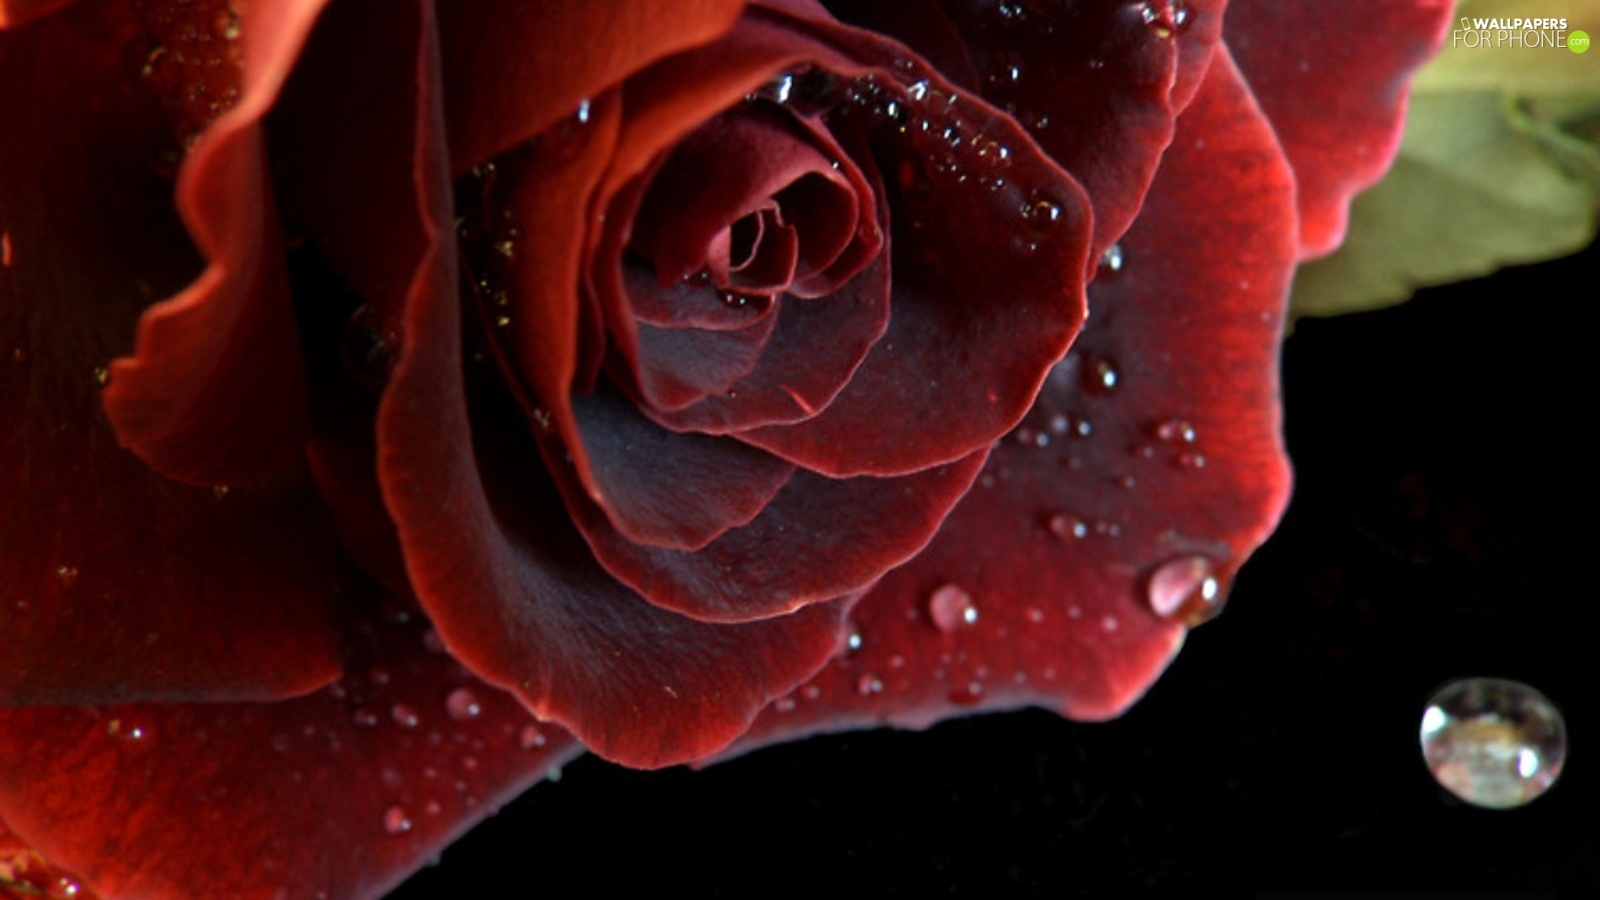 drops, red hot, roses